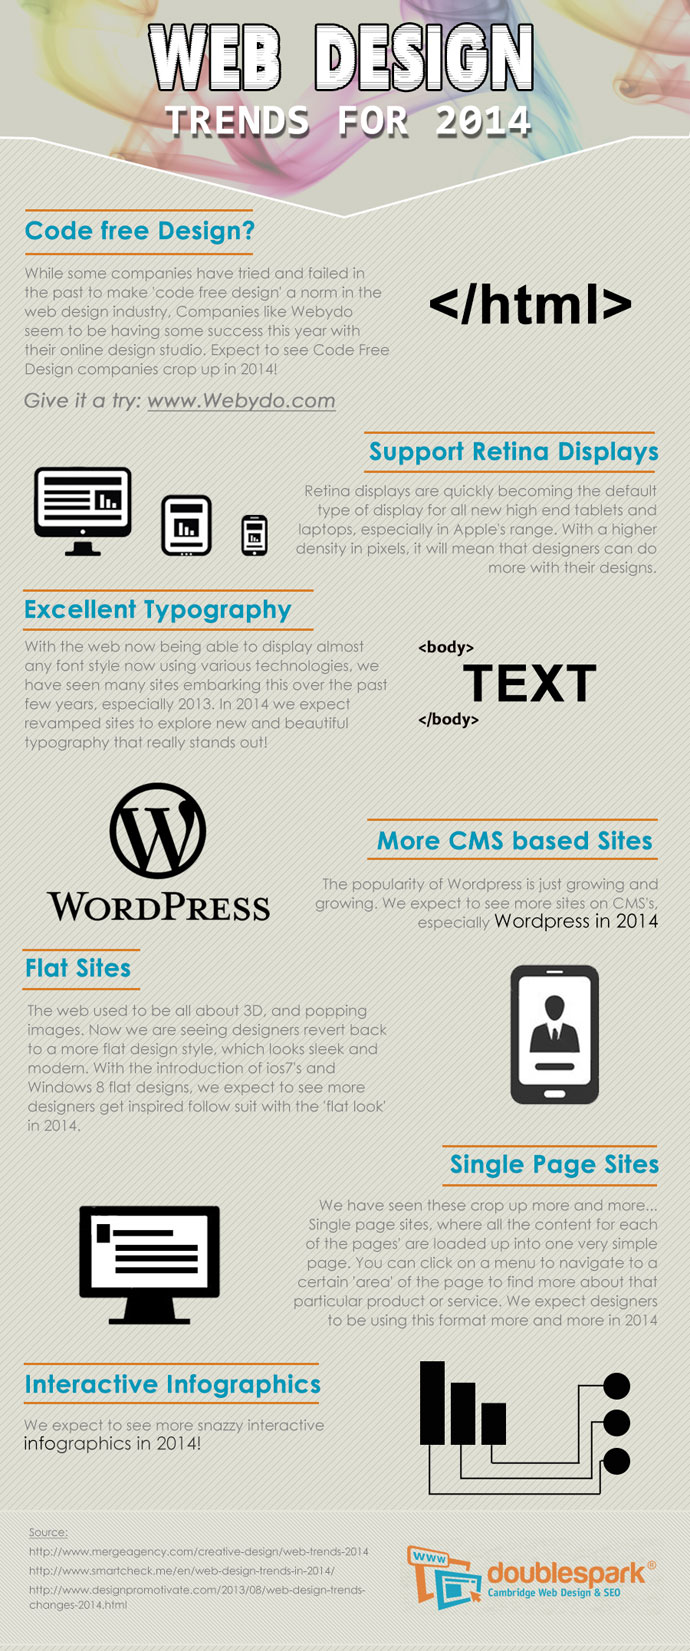 web-design-trends-for-2014_52608d1de0b45